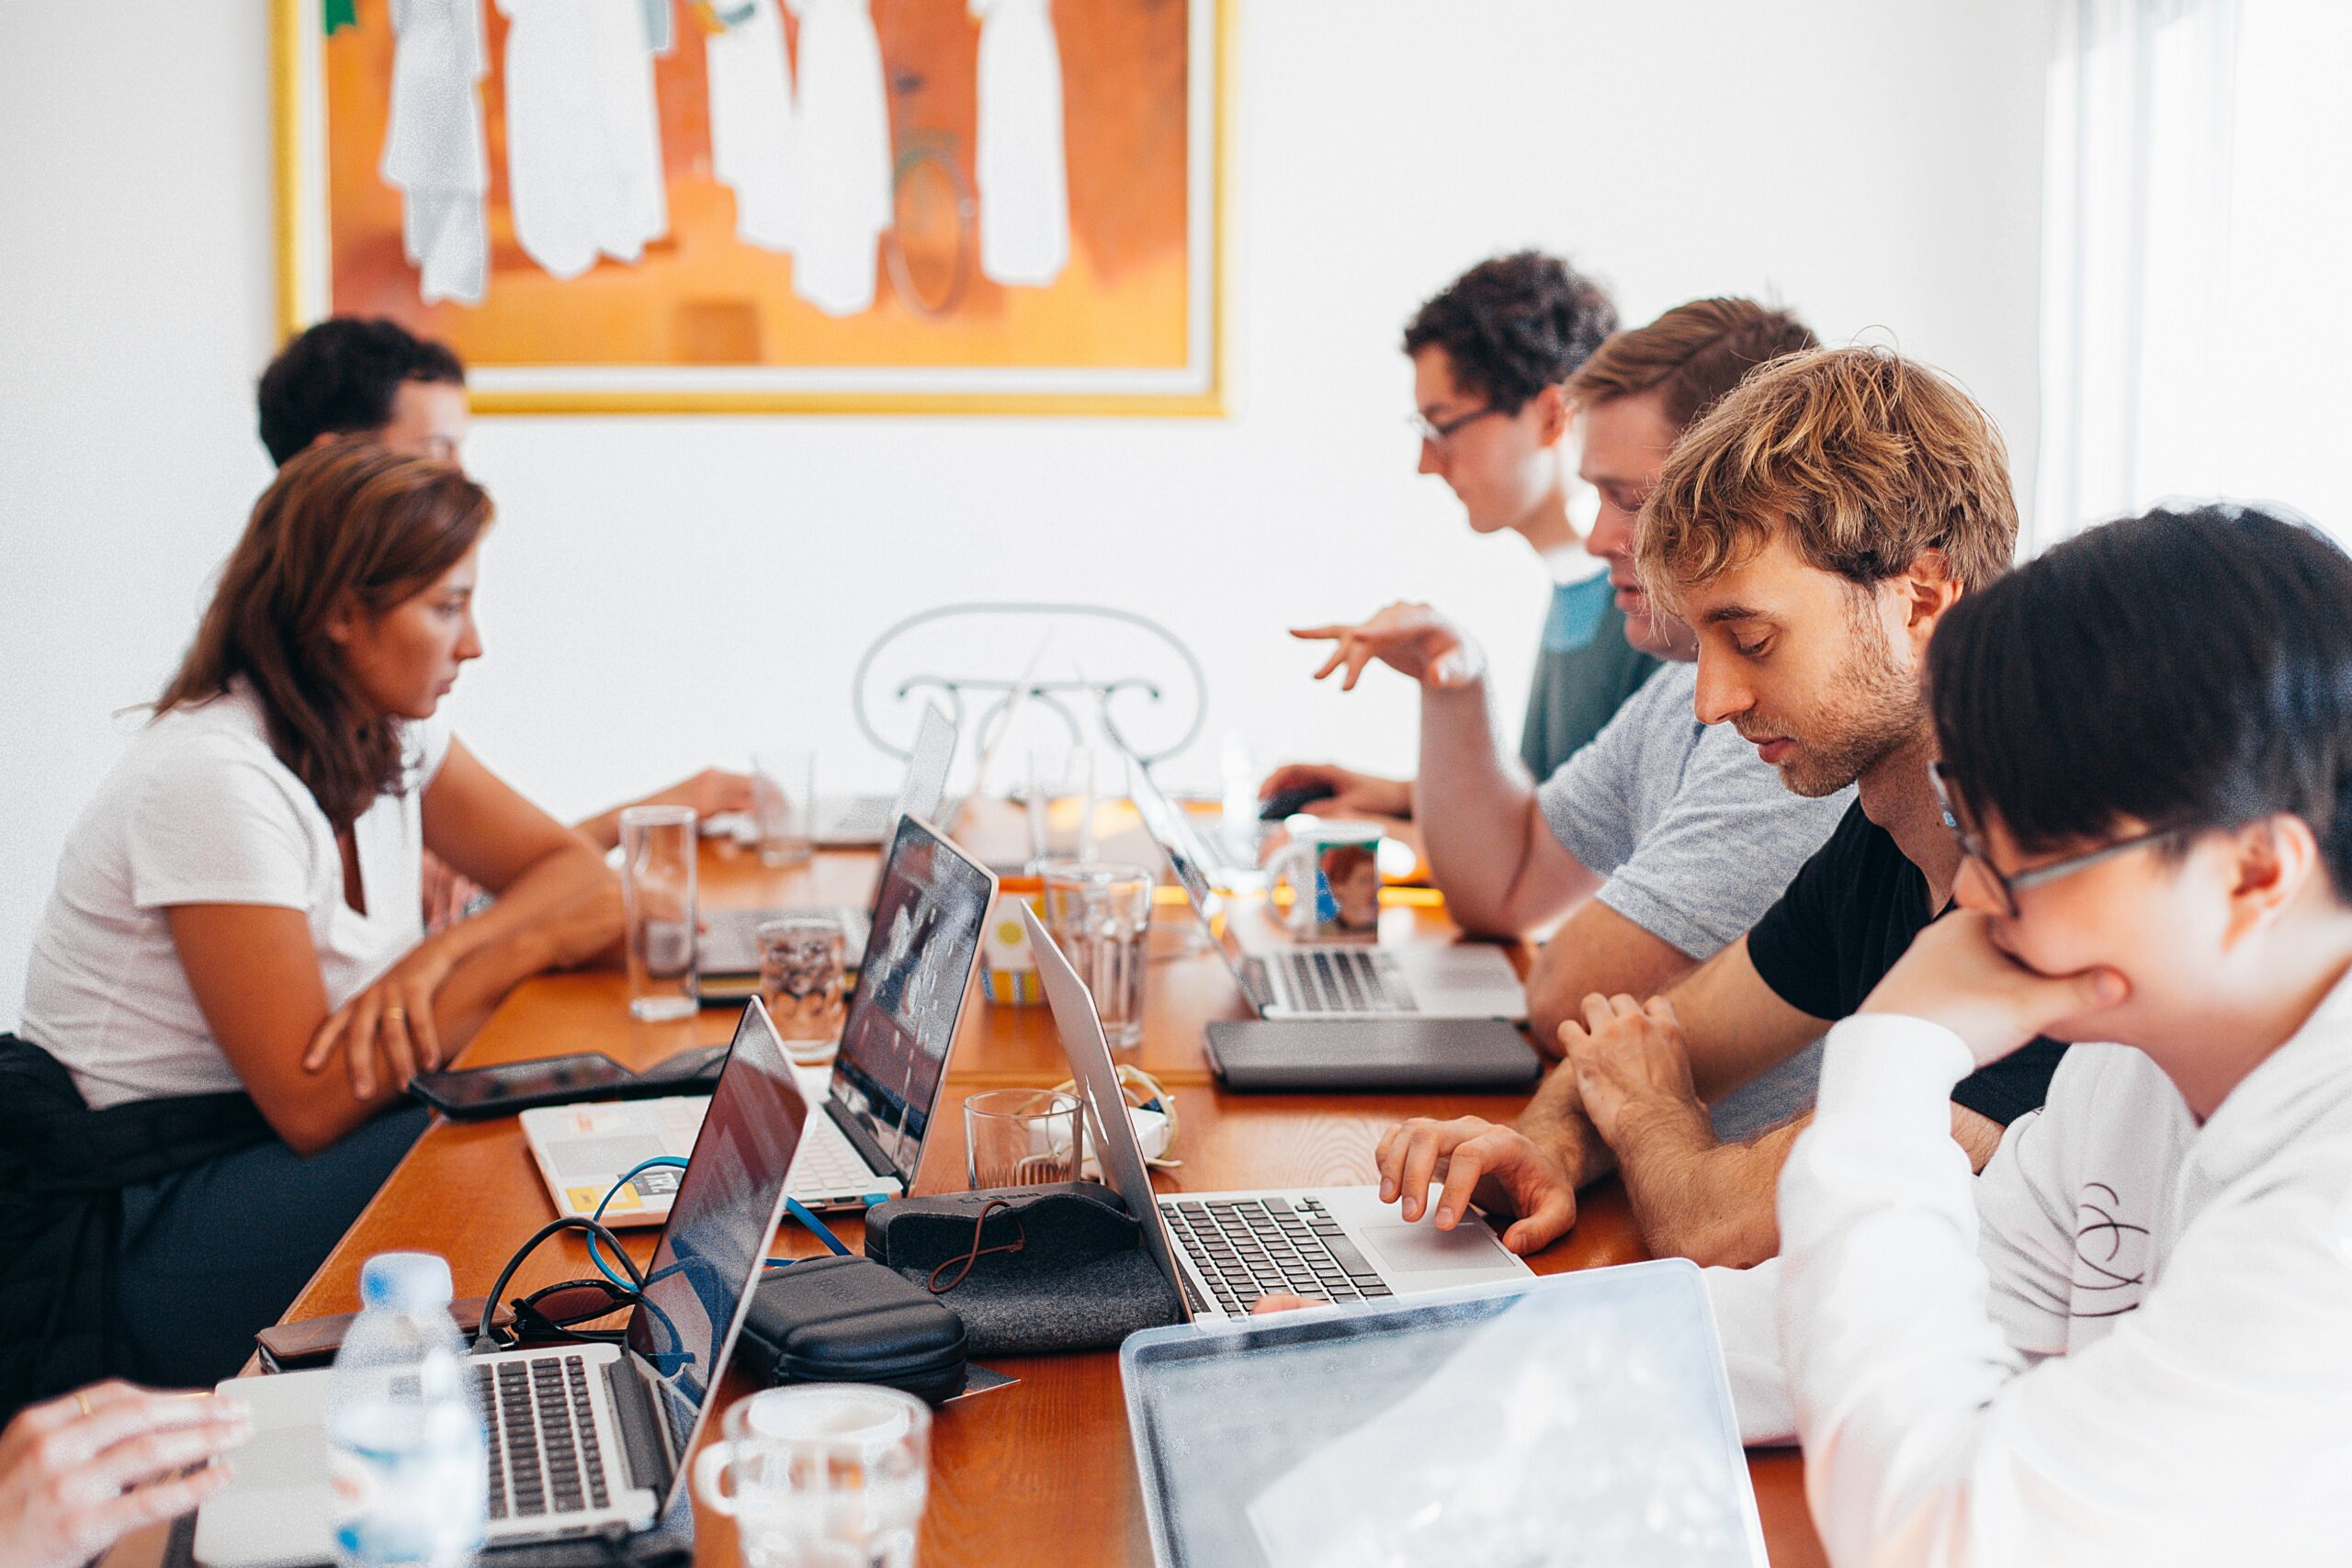 Comparing the cost of internal hire to an outsourced team